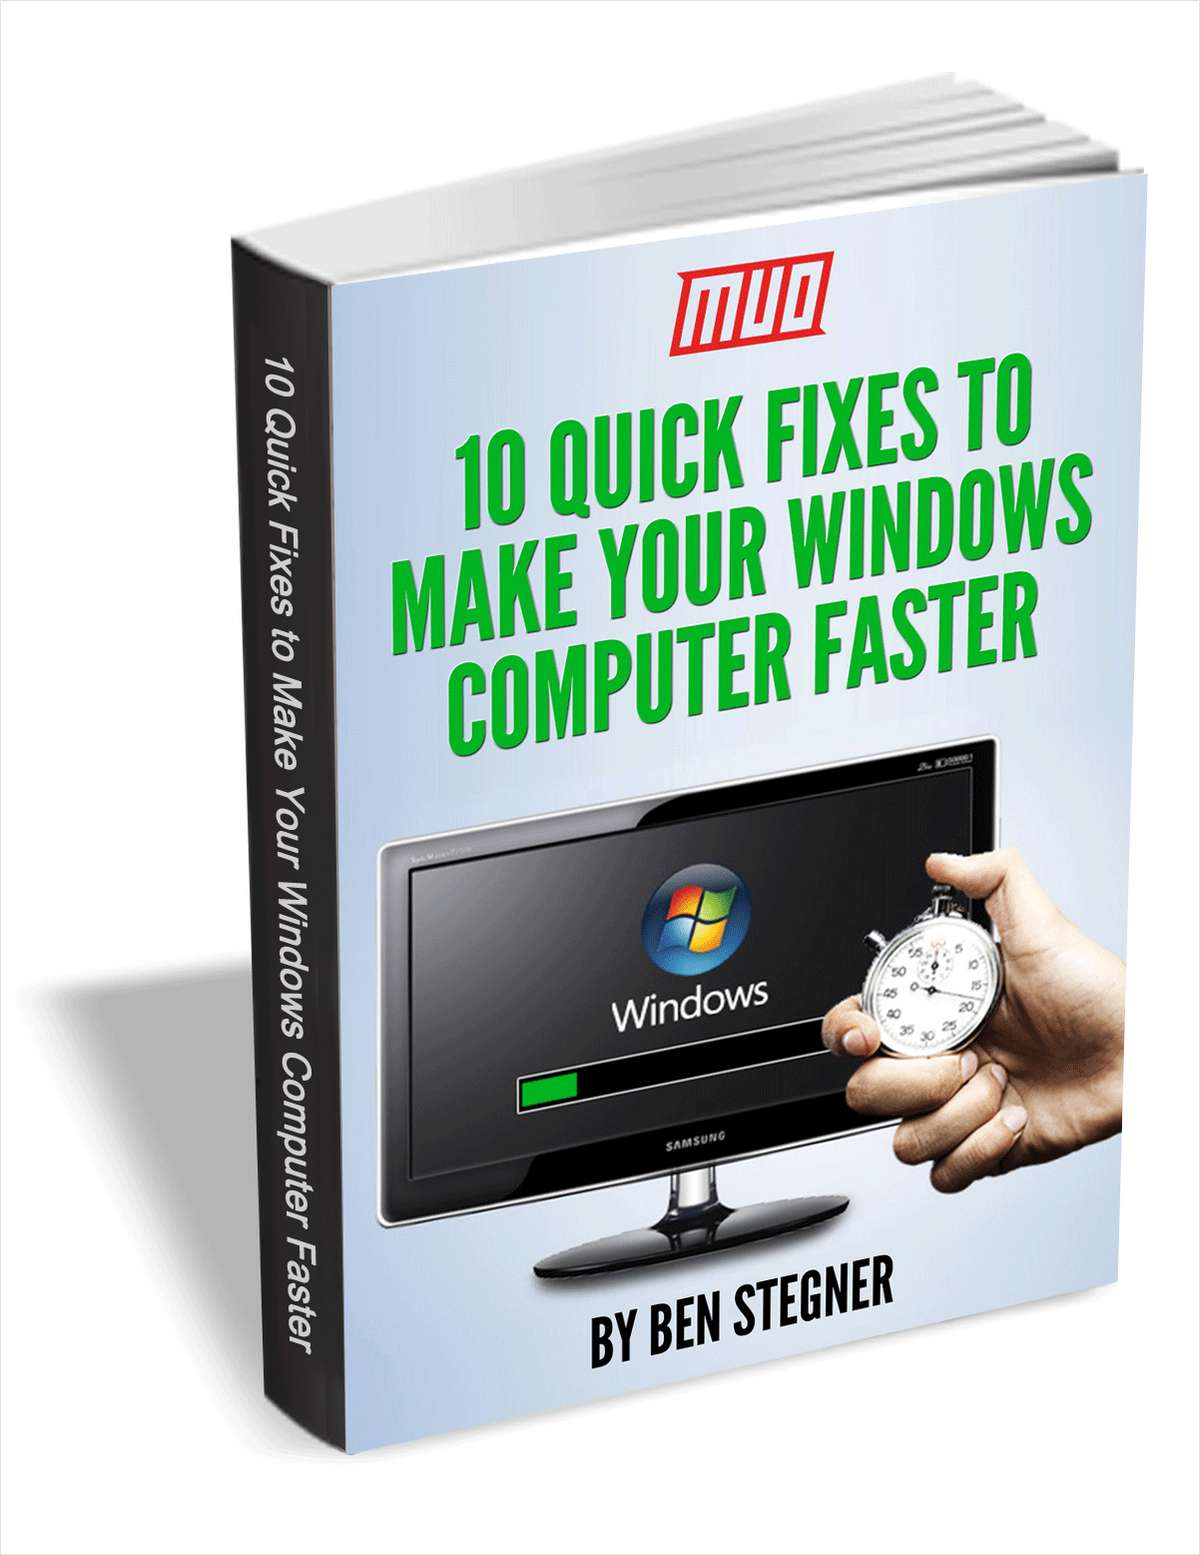 10 Quick Fixes to Make Your Windows Computer Faster